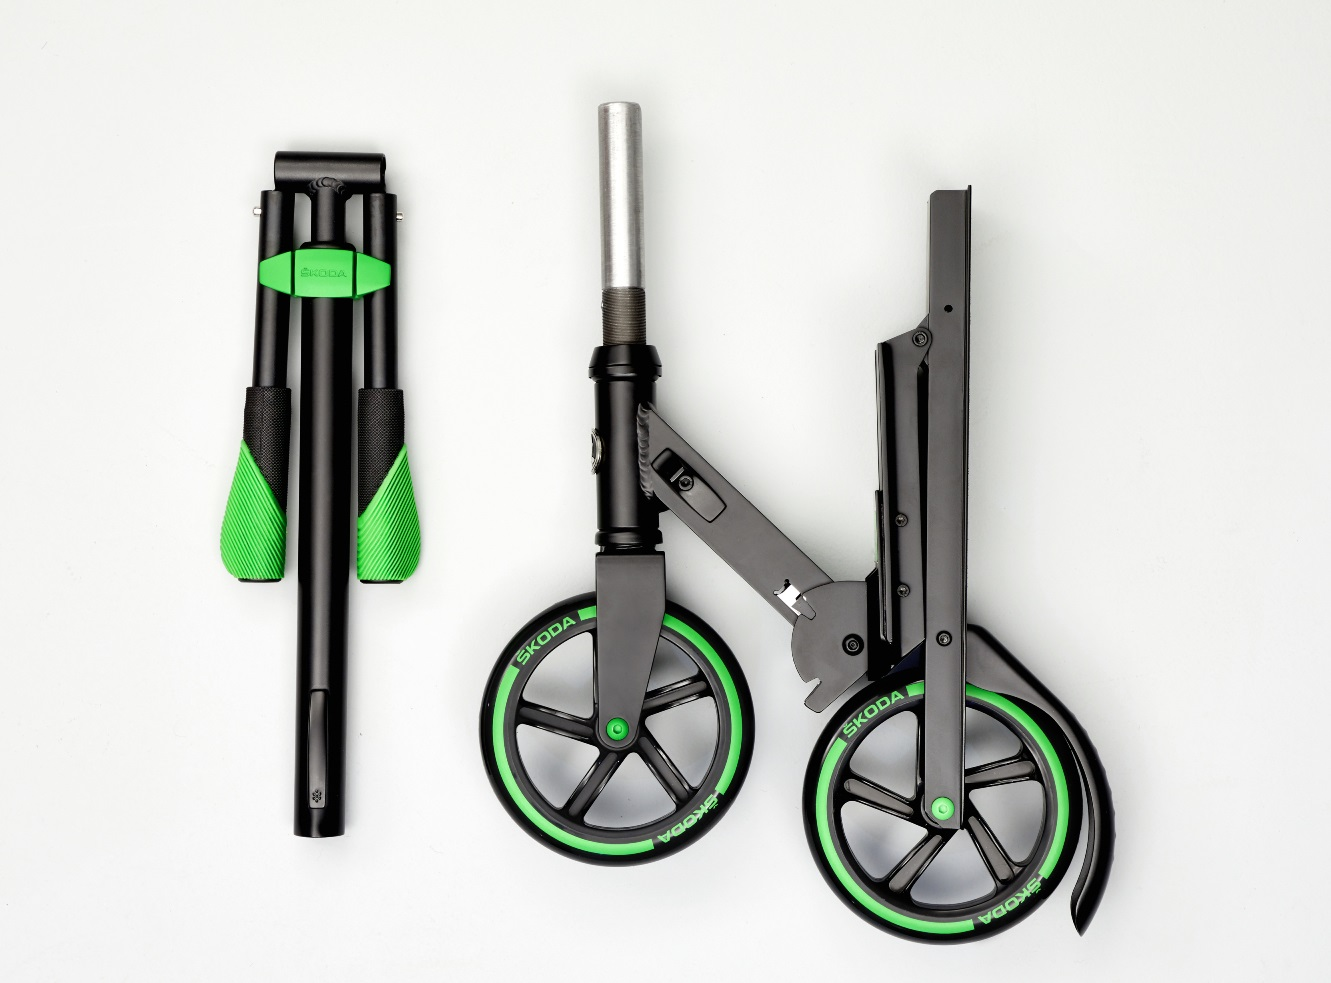 Folding mechanism allows Skoda last-mile scooter to be stowed in car